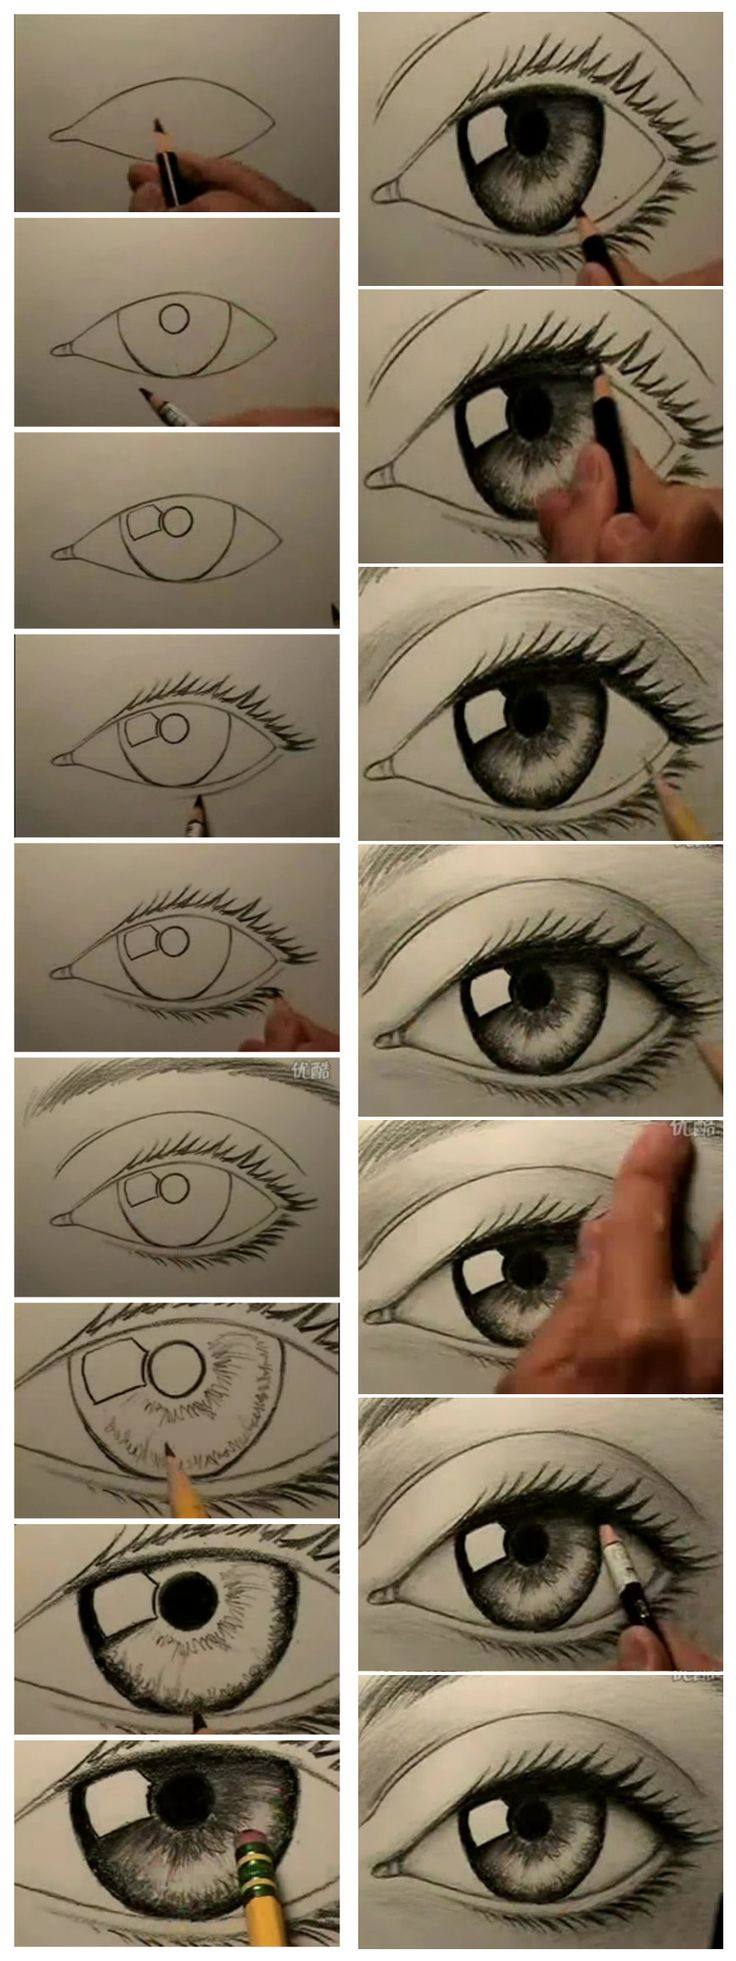 After Teaching Art Lessons And How To Draw The Face, This Step By Step Is